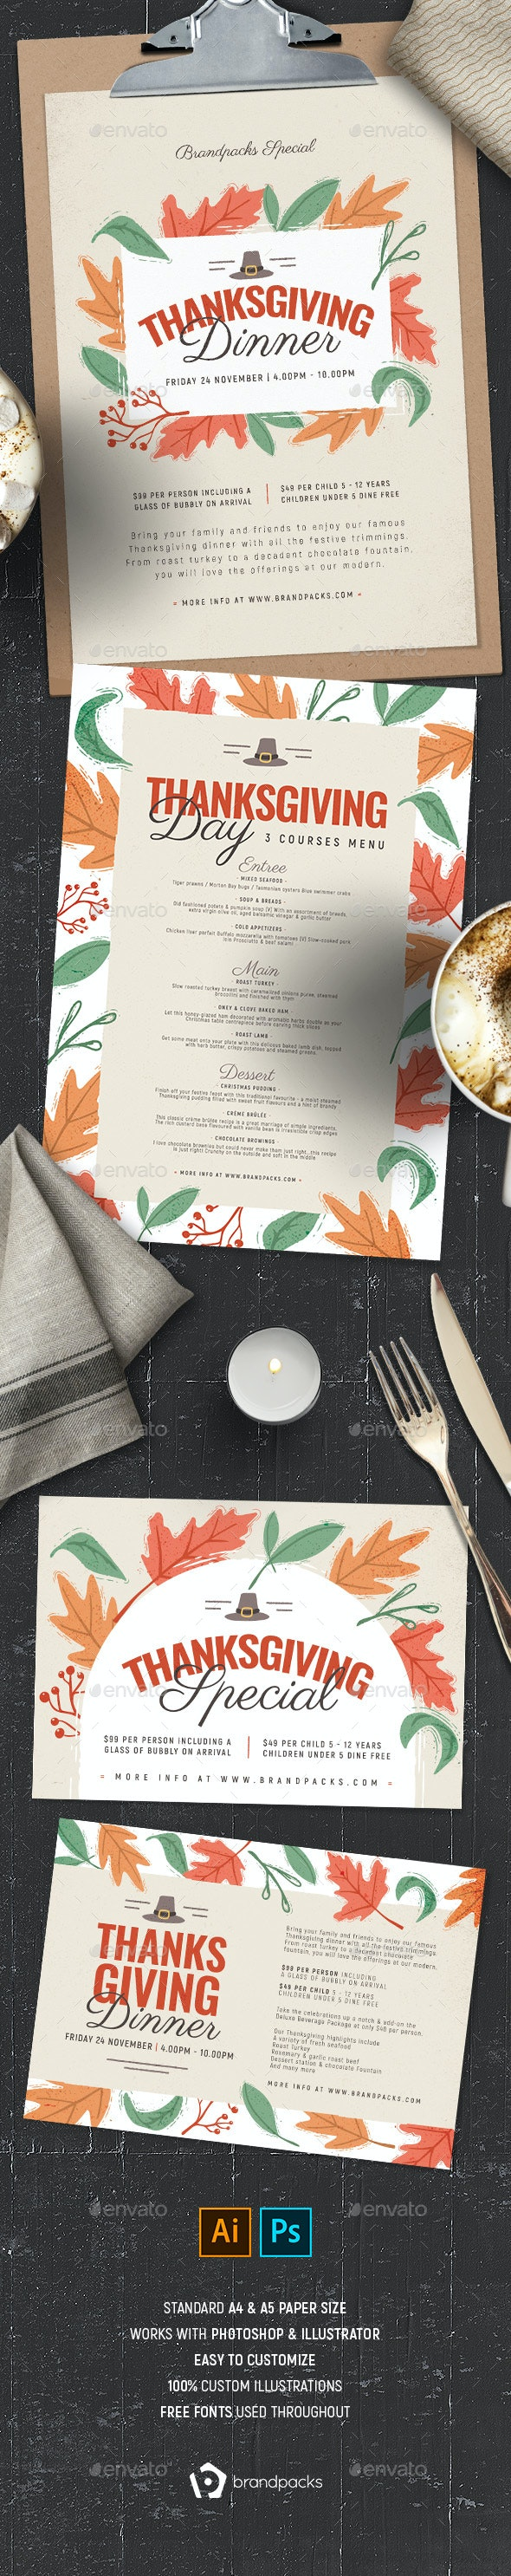 Thanksgiving Menu Template - Food Menus Print Templates